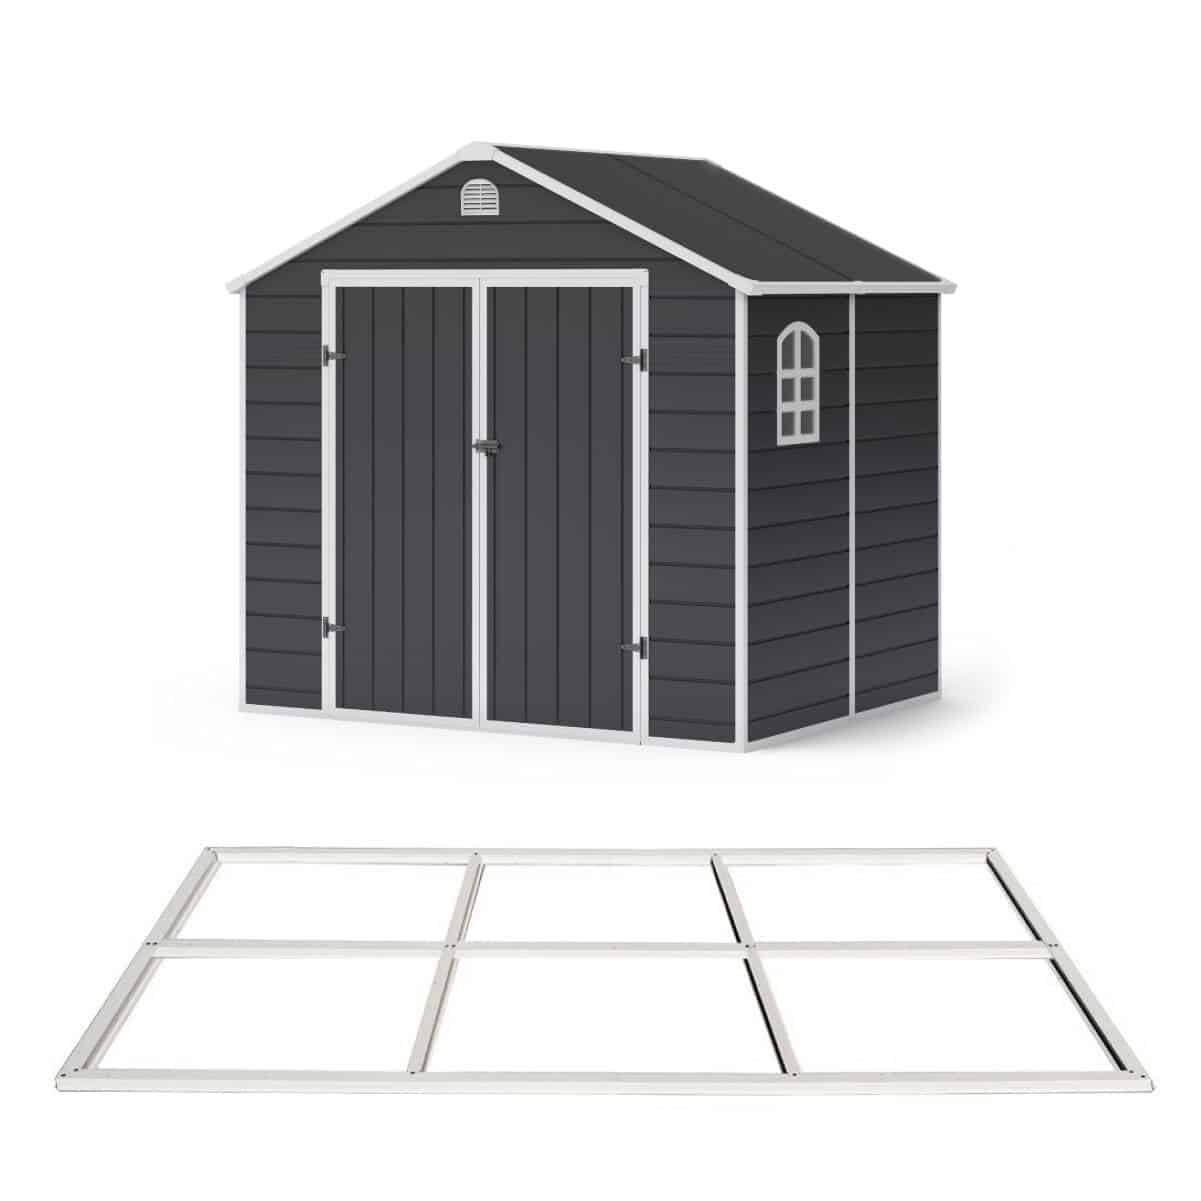 choosing-best-plastic-shed-3-durability